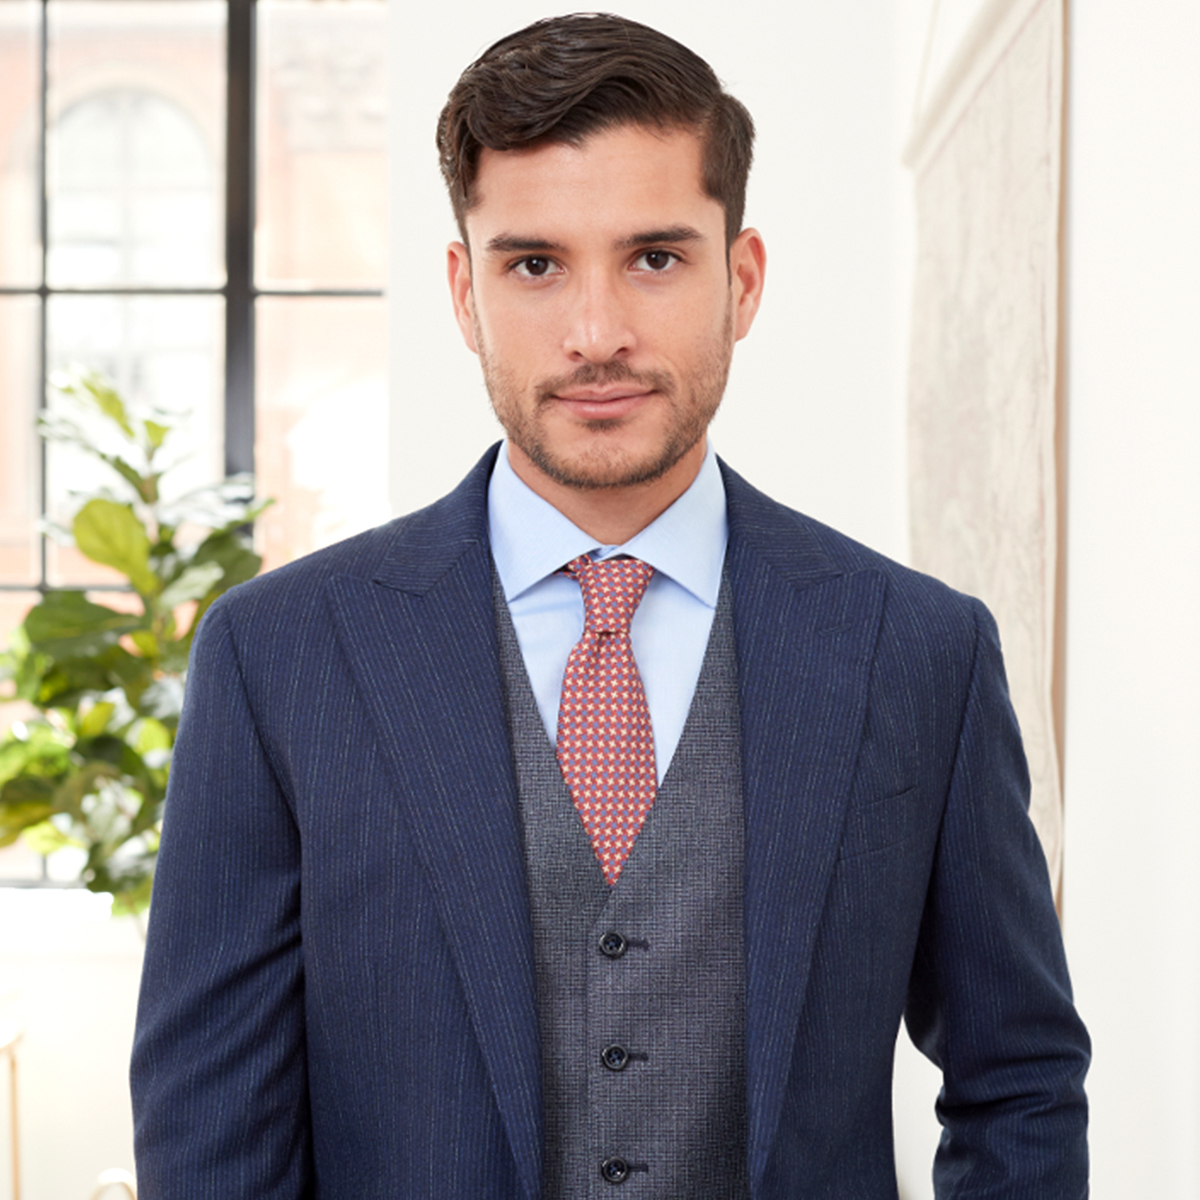 Male model standing indoors looking directly at the camera wearing a pinstriped jacket.